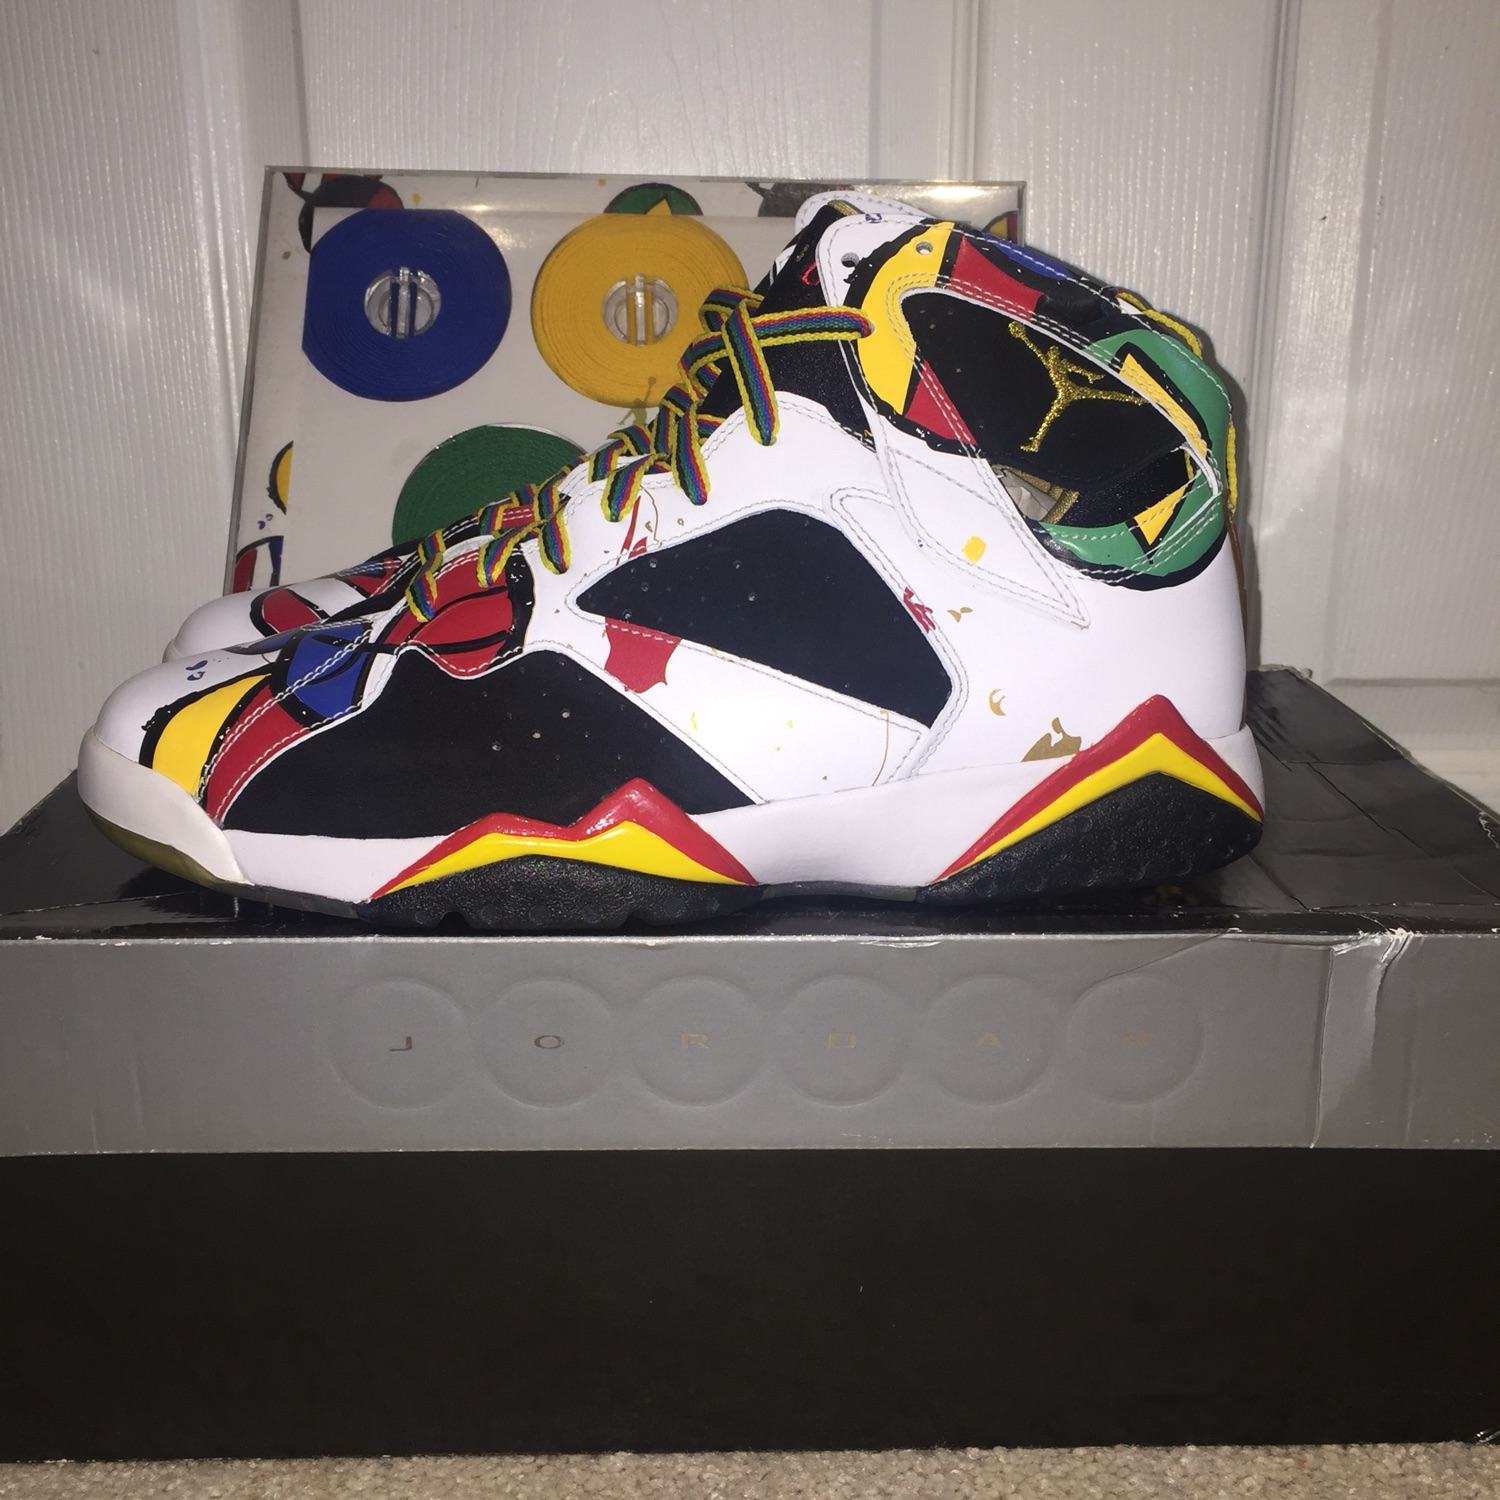 reputable site ceac4 a64b9 Air Jordan 7 Miro Olympic Ds Size 9.5